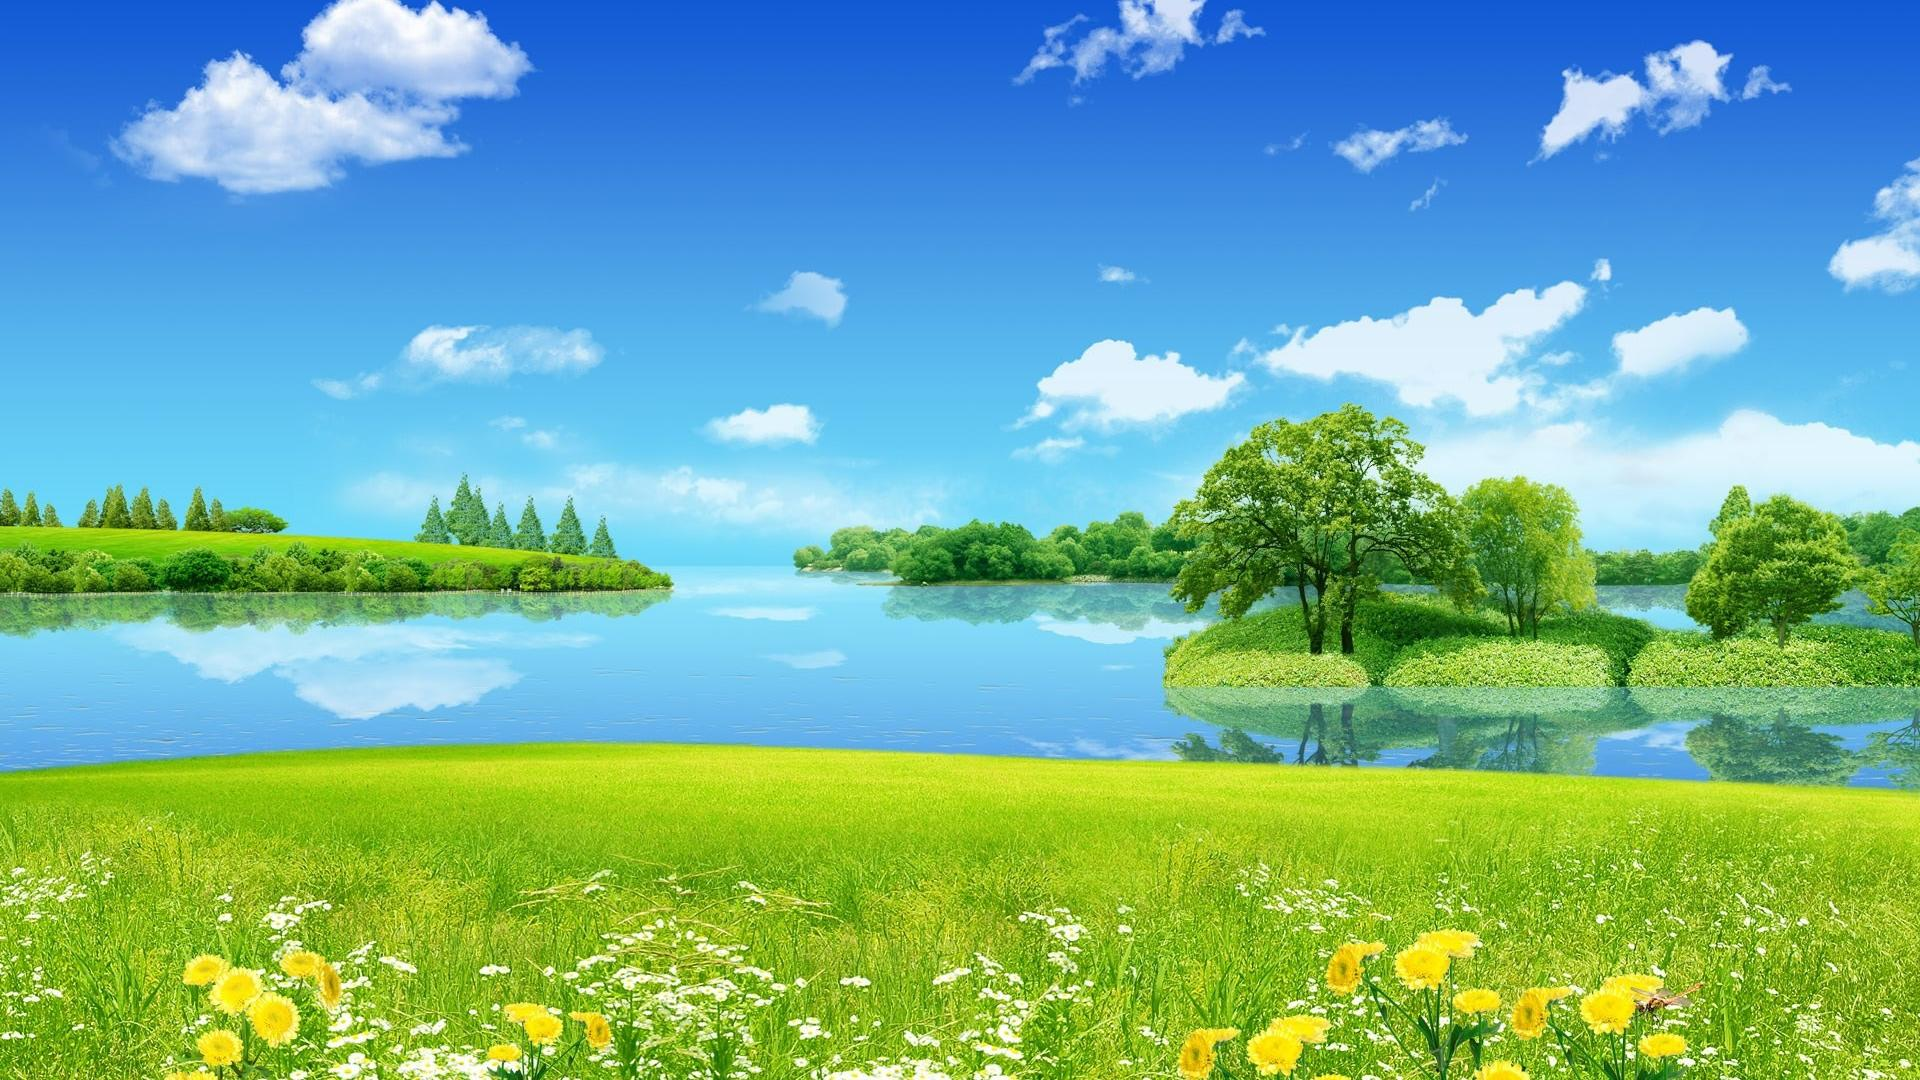 Popular Backgrounds Free Download: Most Popular HD Wallpapers For Your Desktop